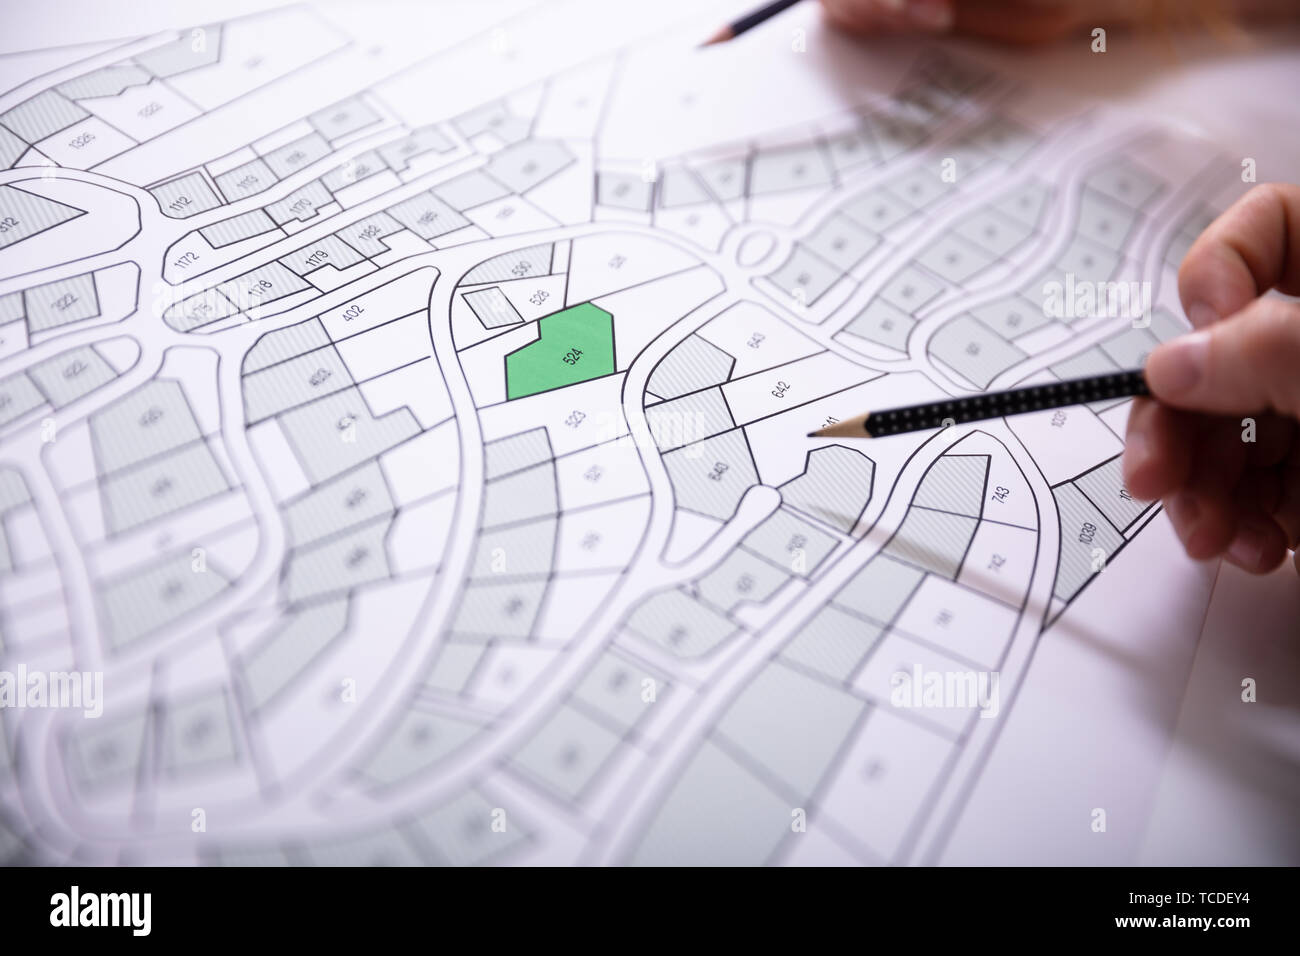 Close-up Of Human Hand Holding Pencil Over Paper Cadastre Map - Stock Image